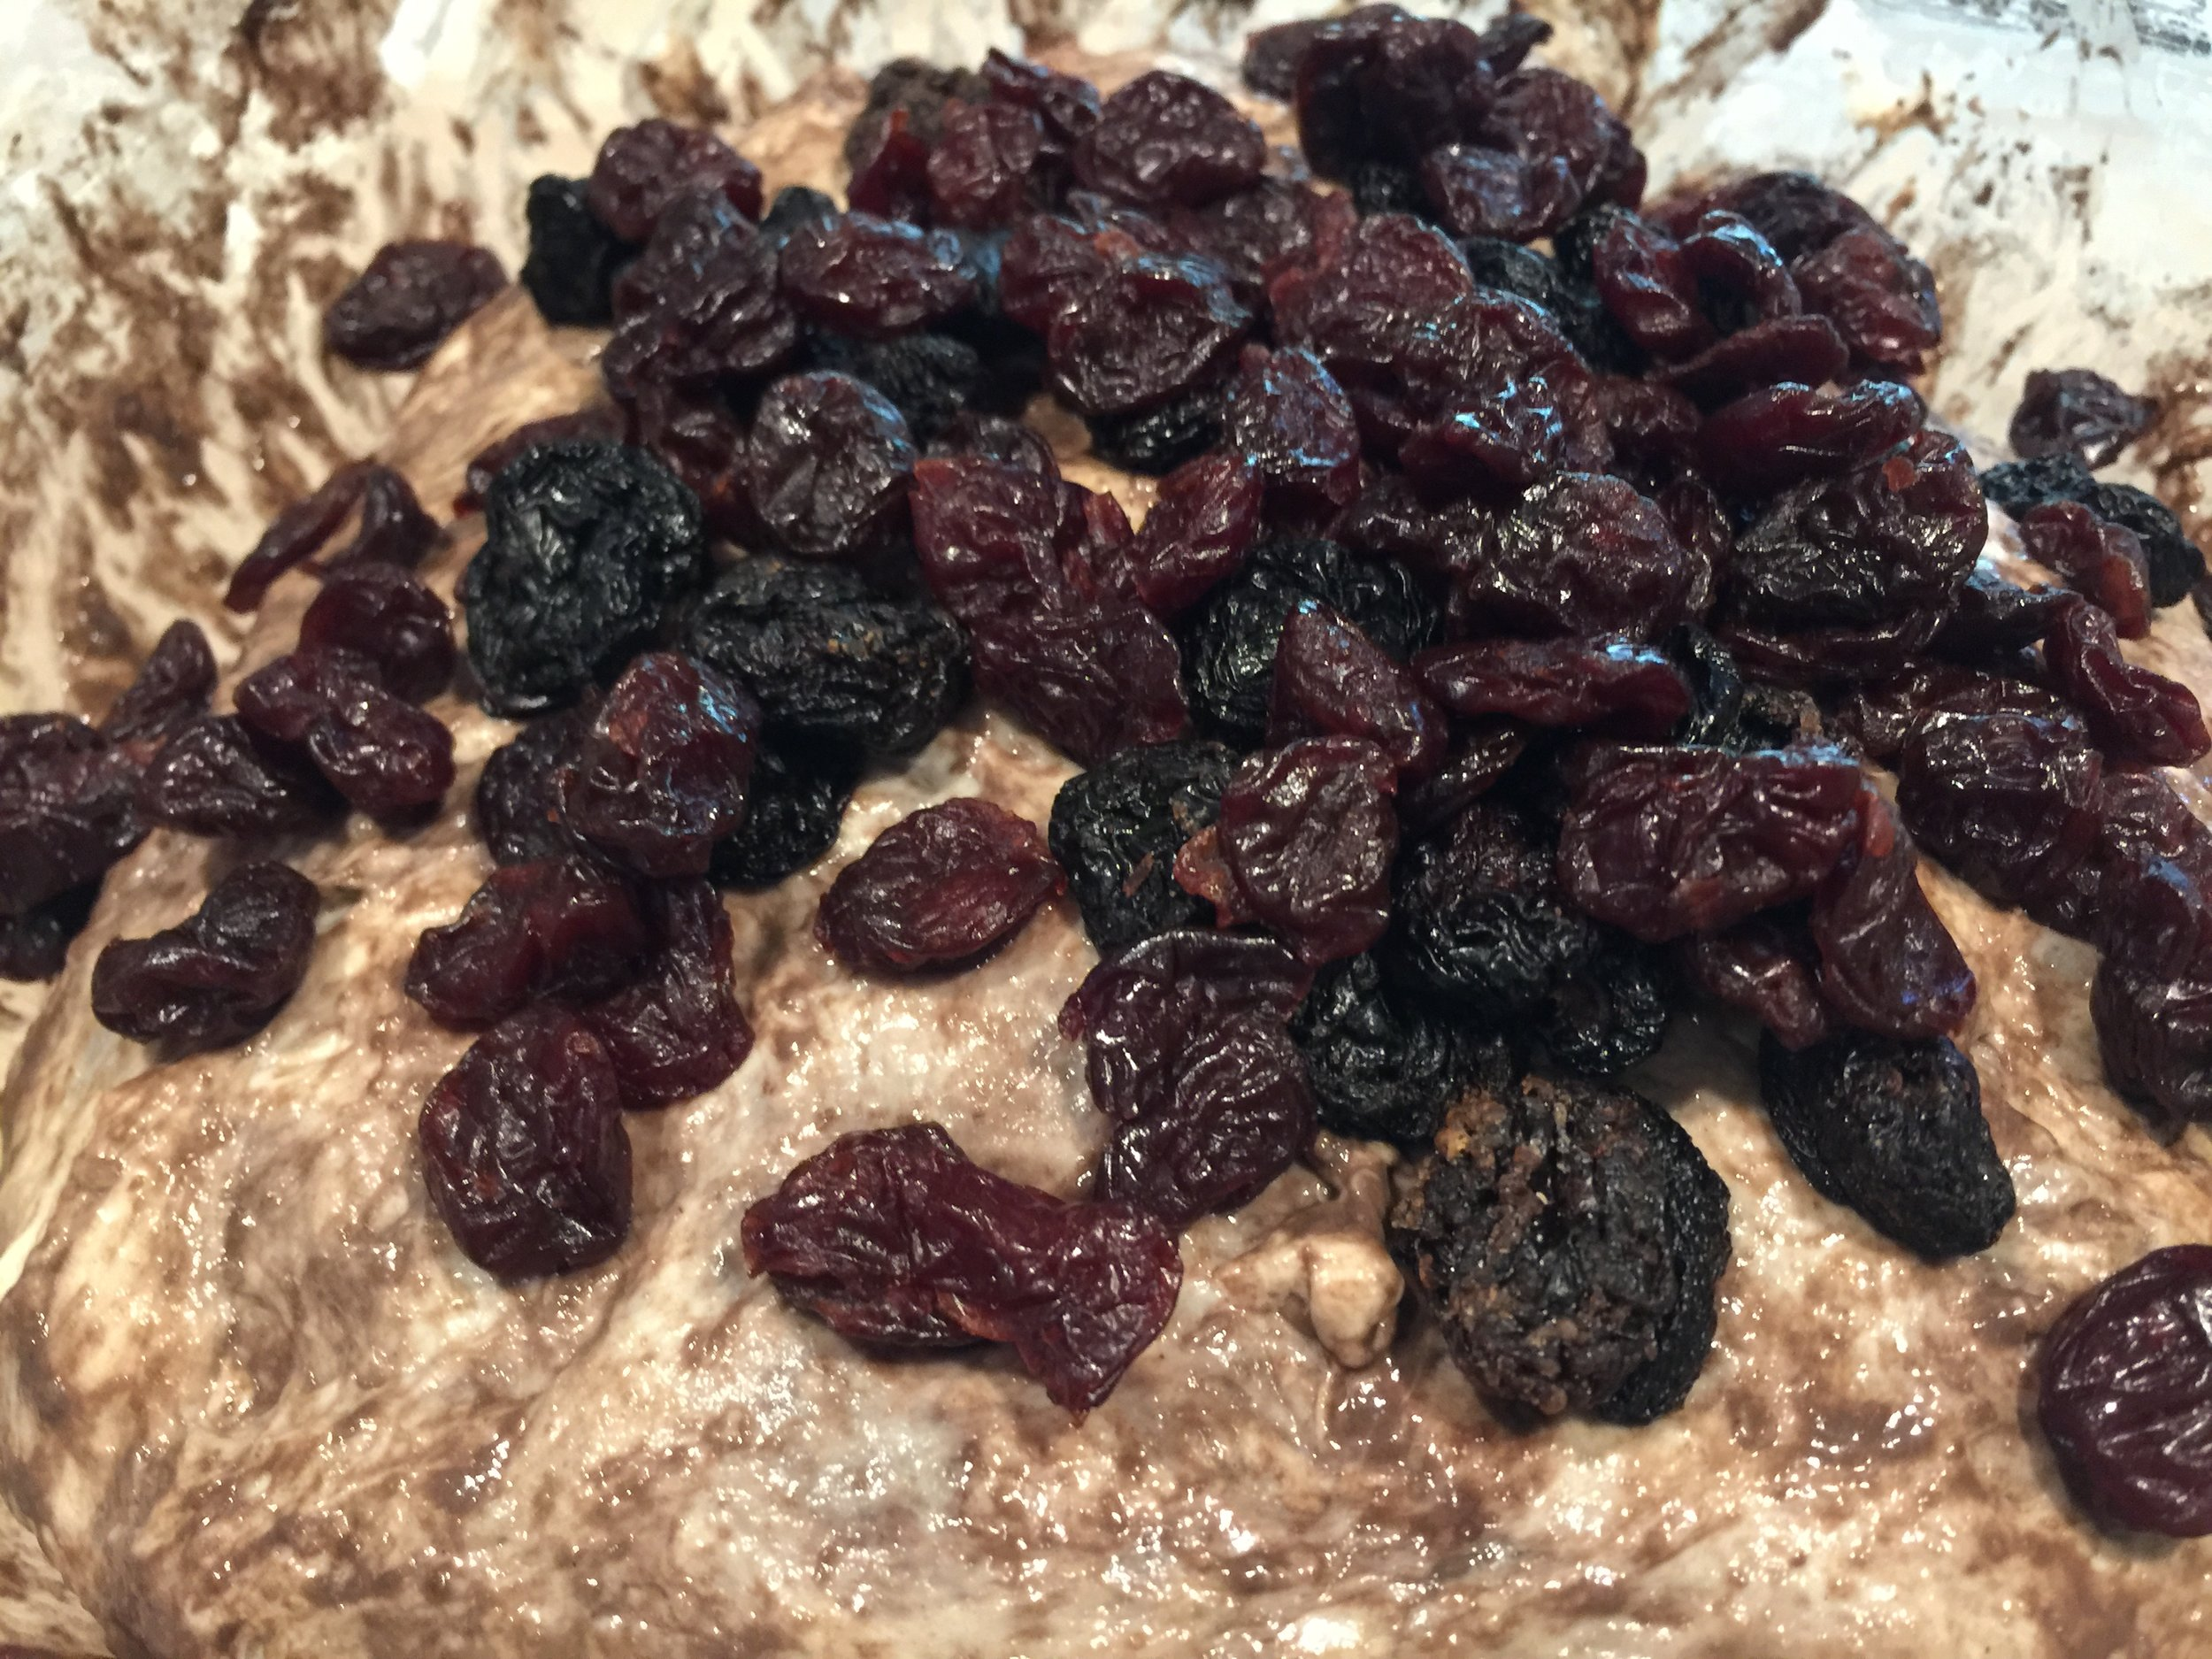 A combination of sweet and tasrt cherries are used to produce a balanced flavor with the sourdough.